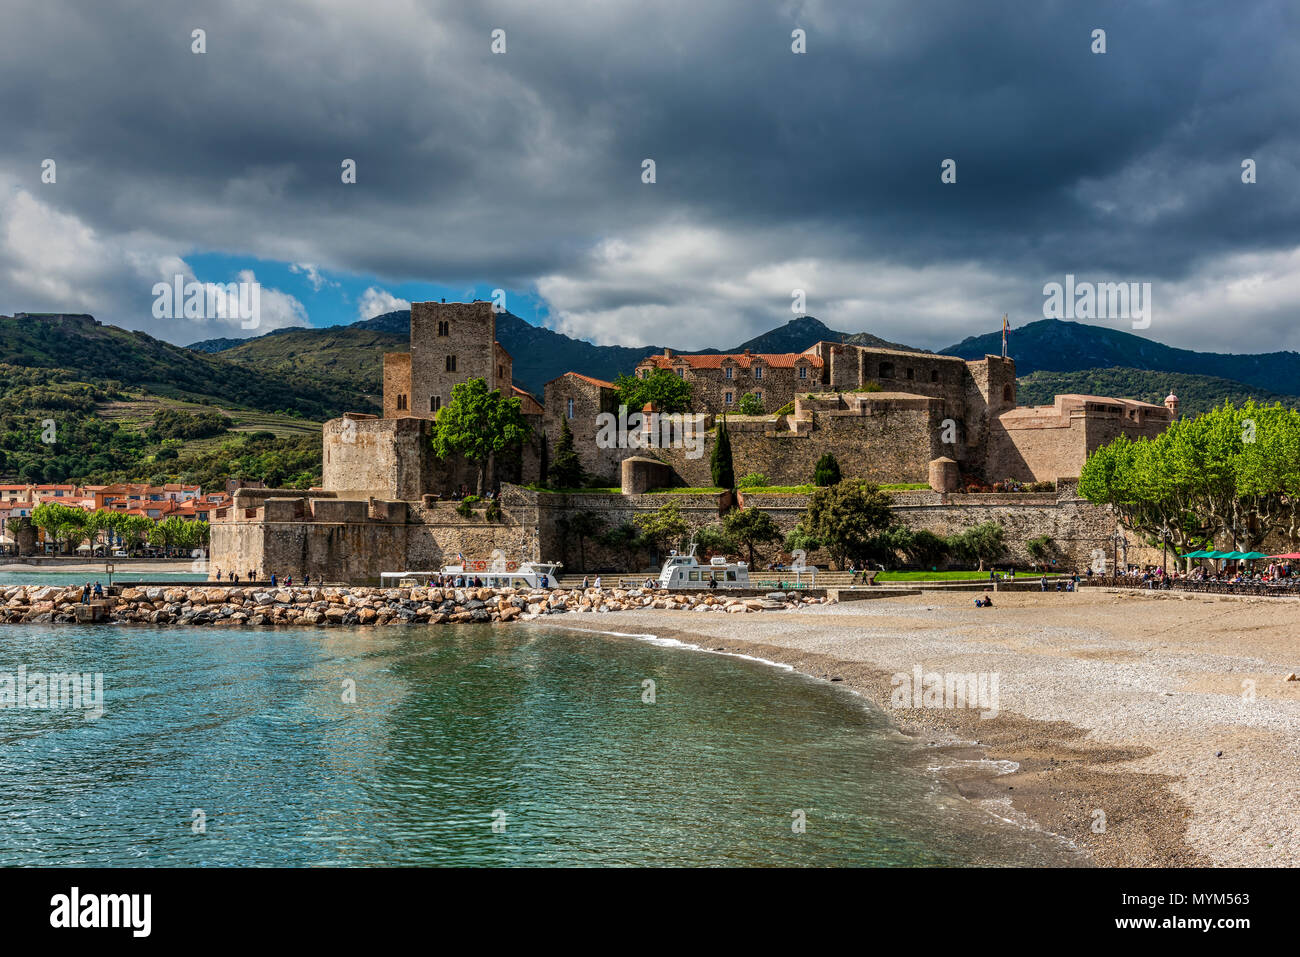 Chateau Royal, Collioure, Pyrenees-Orientales, France - Stock Image